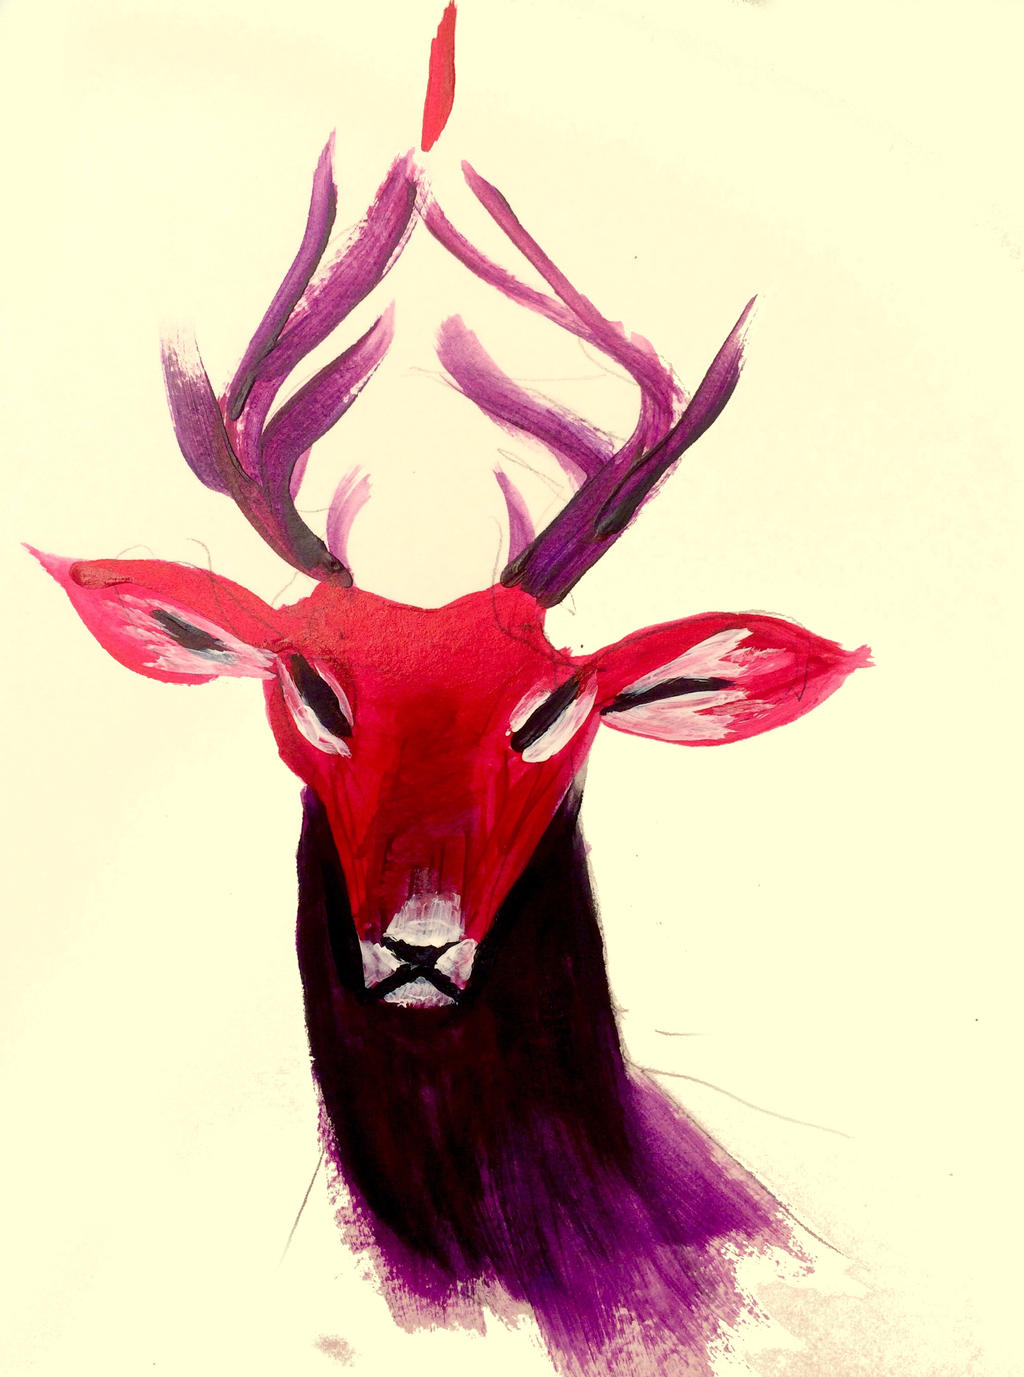 Red Deer by Quadrupedal